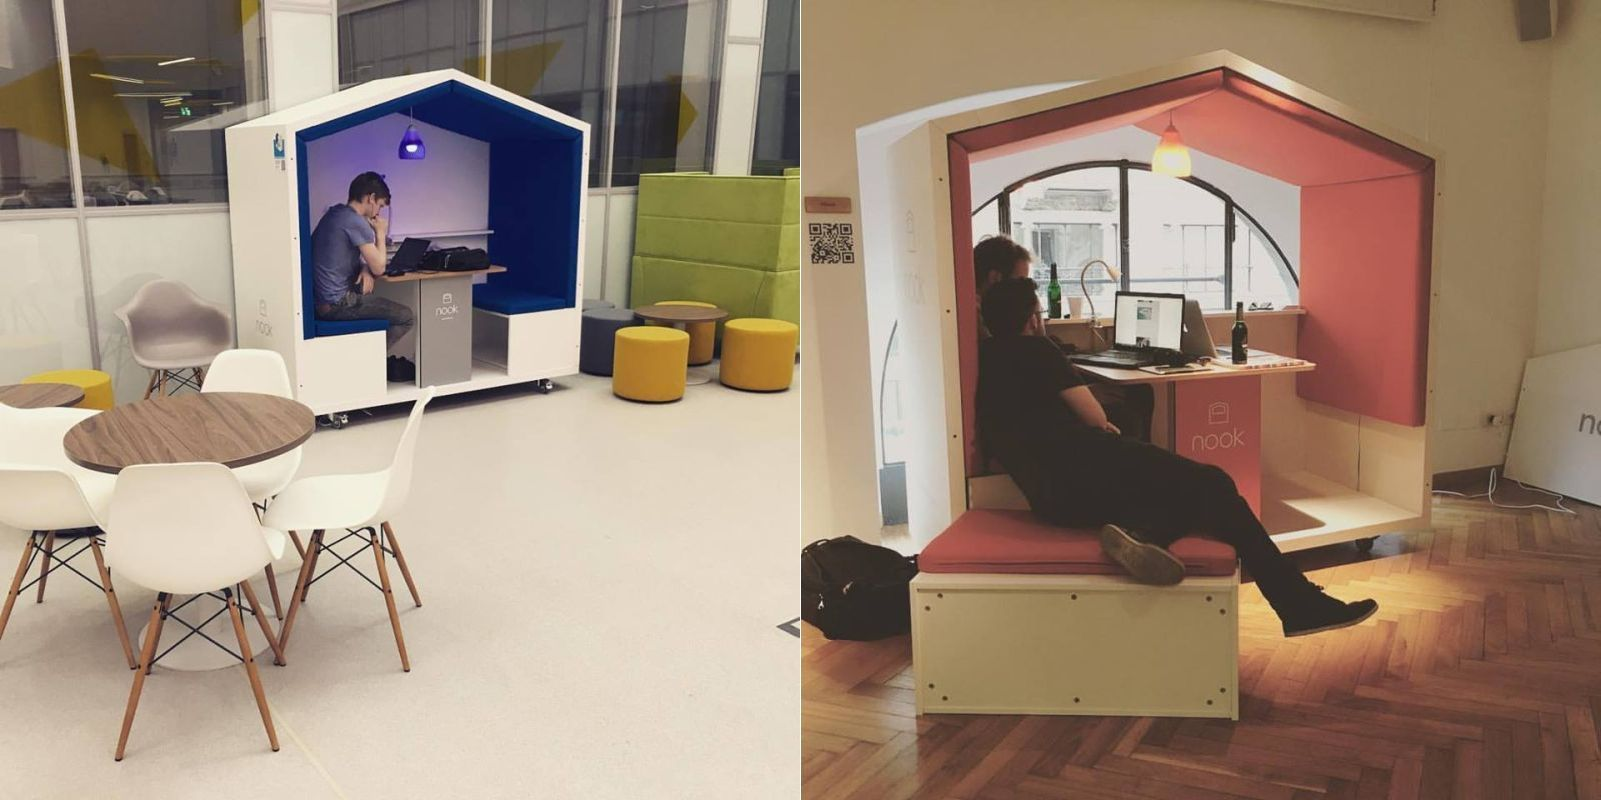 Nook Pod Is Movable Privacy Solution For Modern Workplace Nook